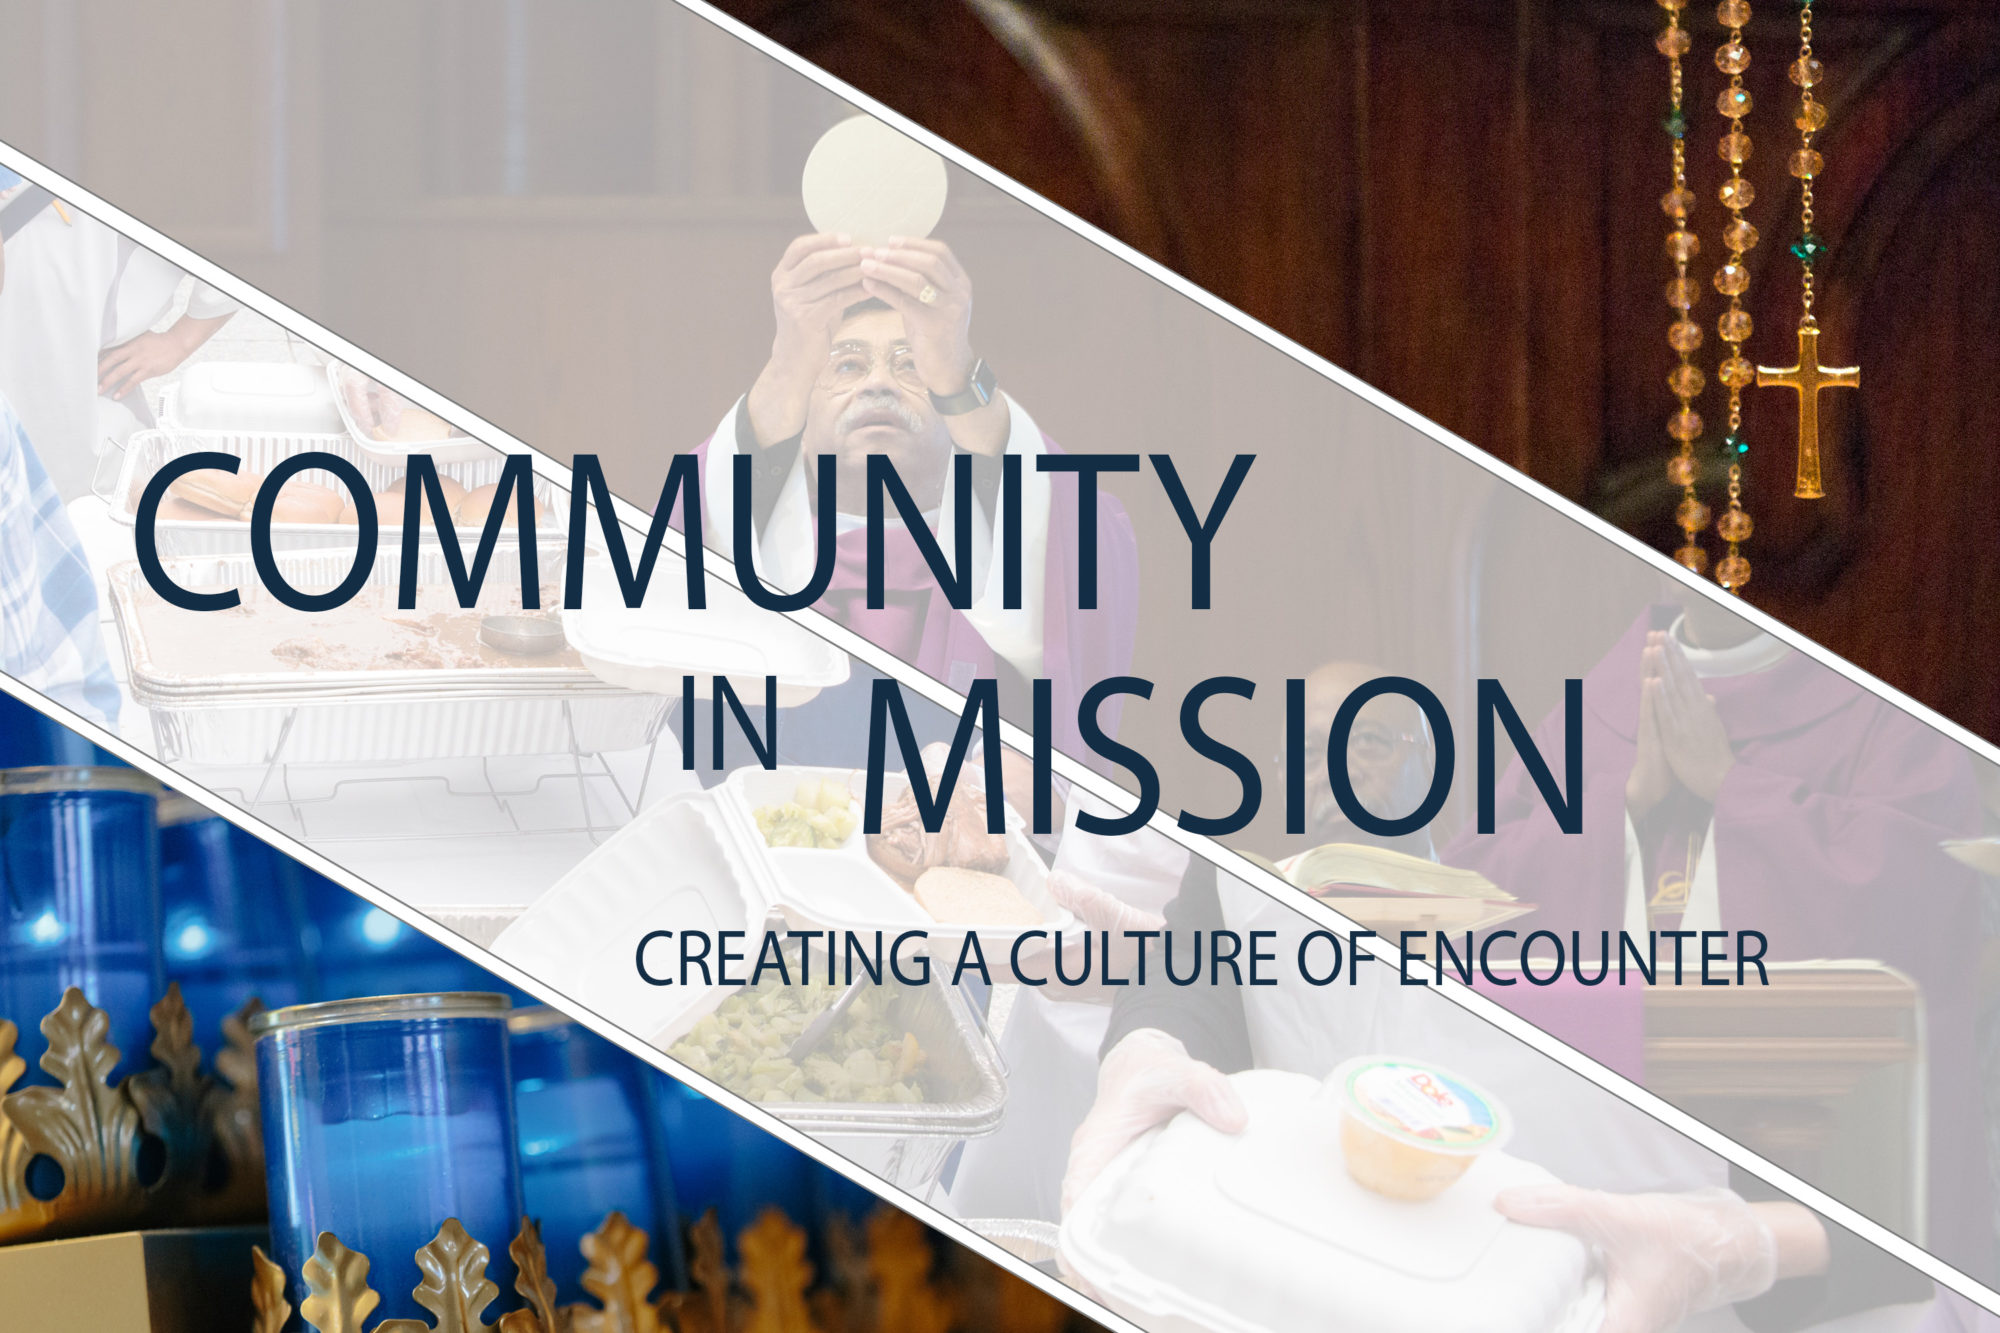 Community in Mission